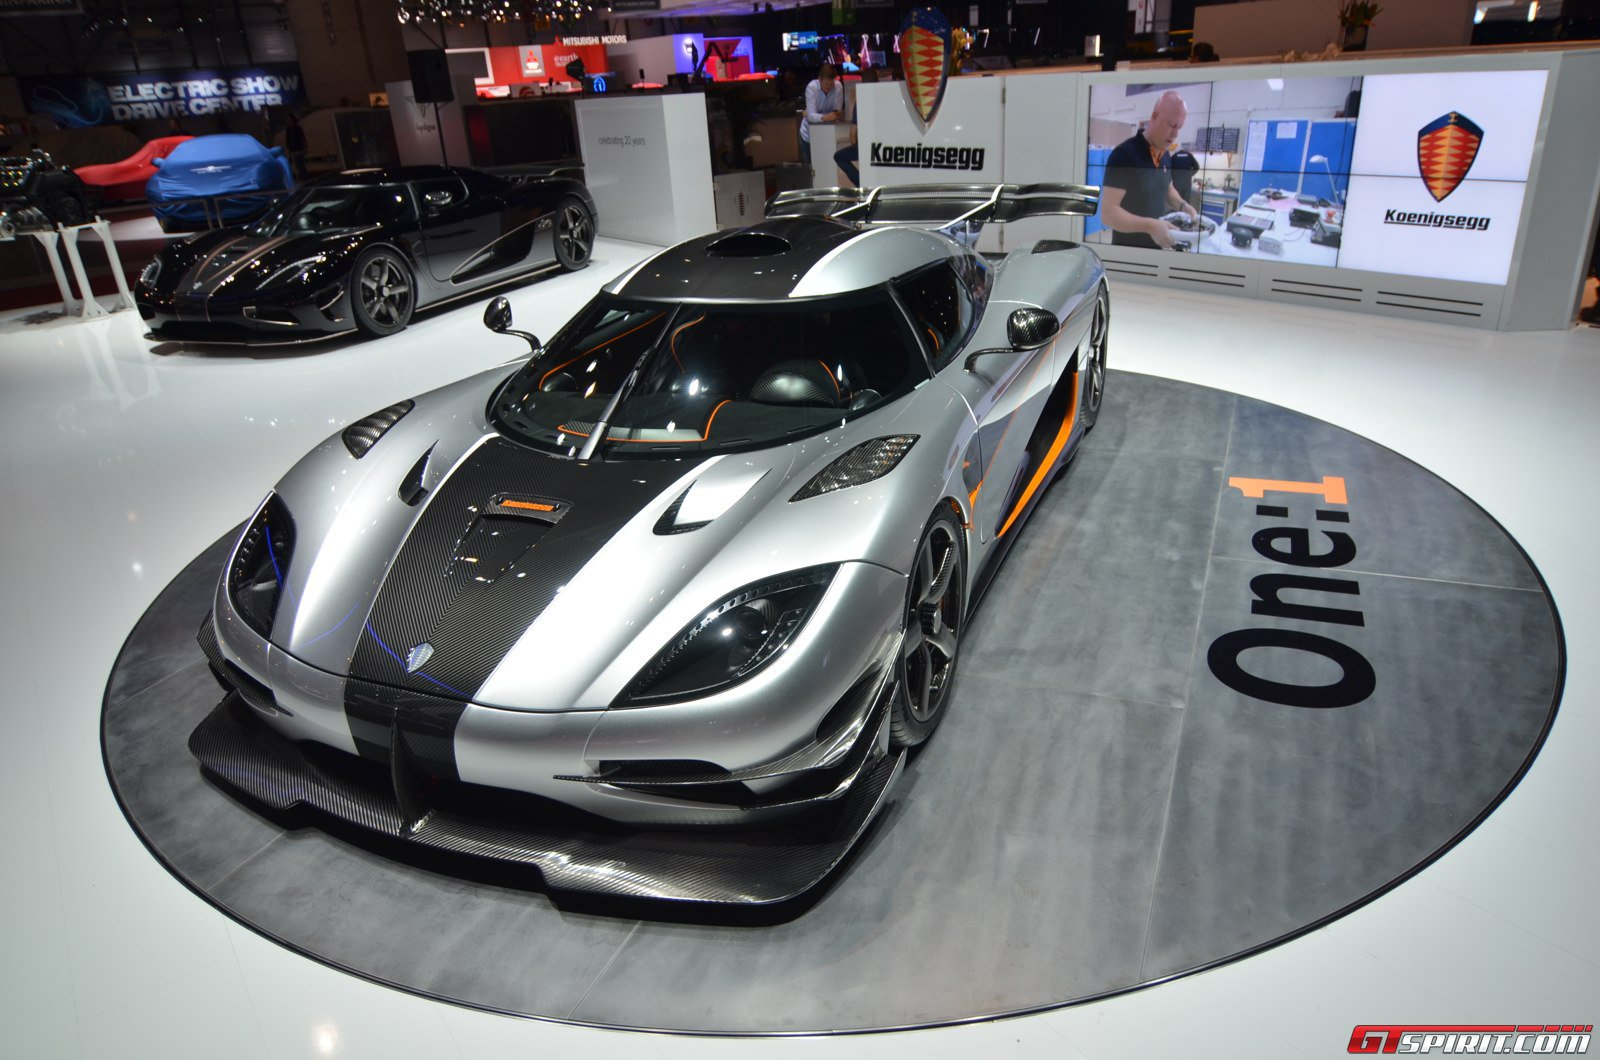 koenigsegg videos video 1 - photo #24